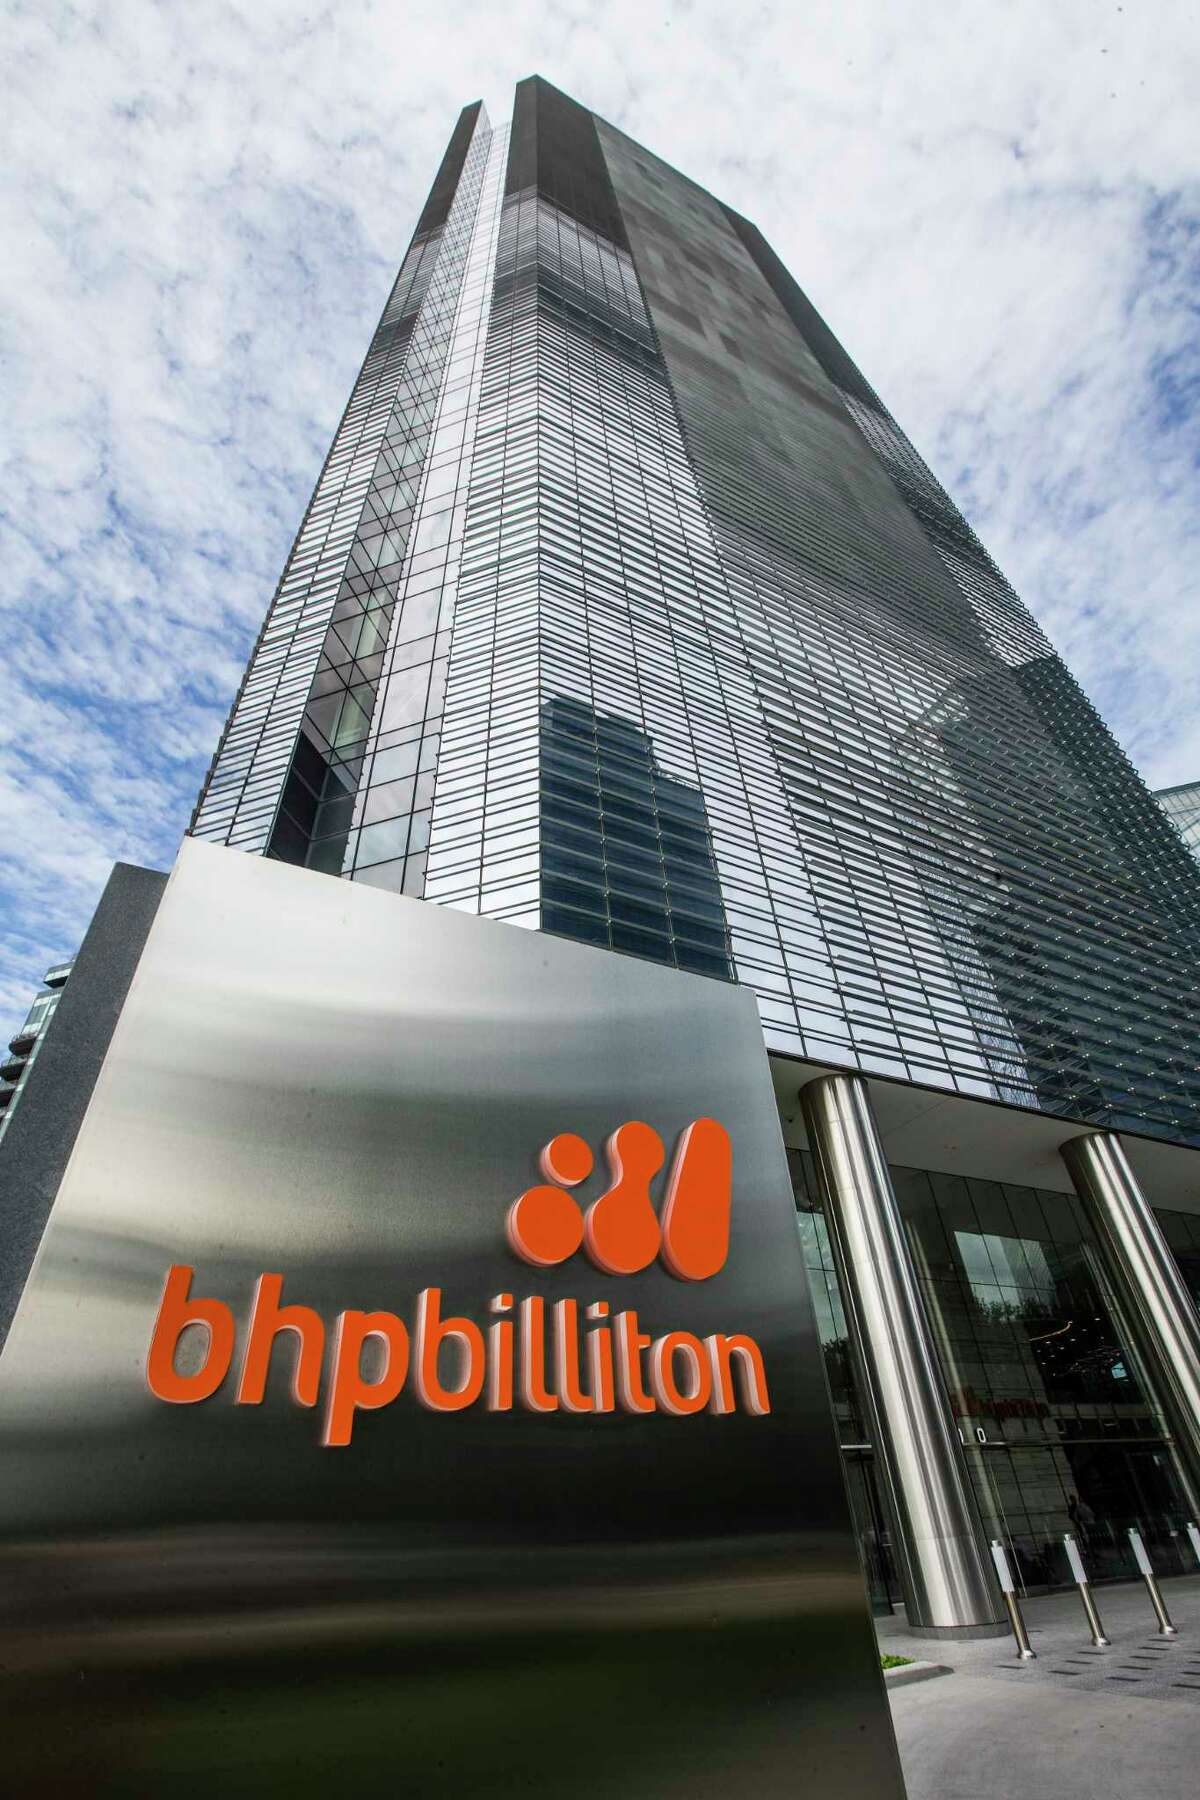 BHP Billiton Petroleum's new office space appears to have taken some cues from Silicon Valley workplaces.